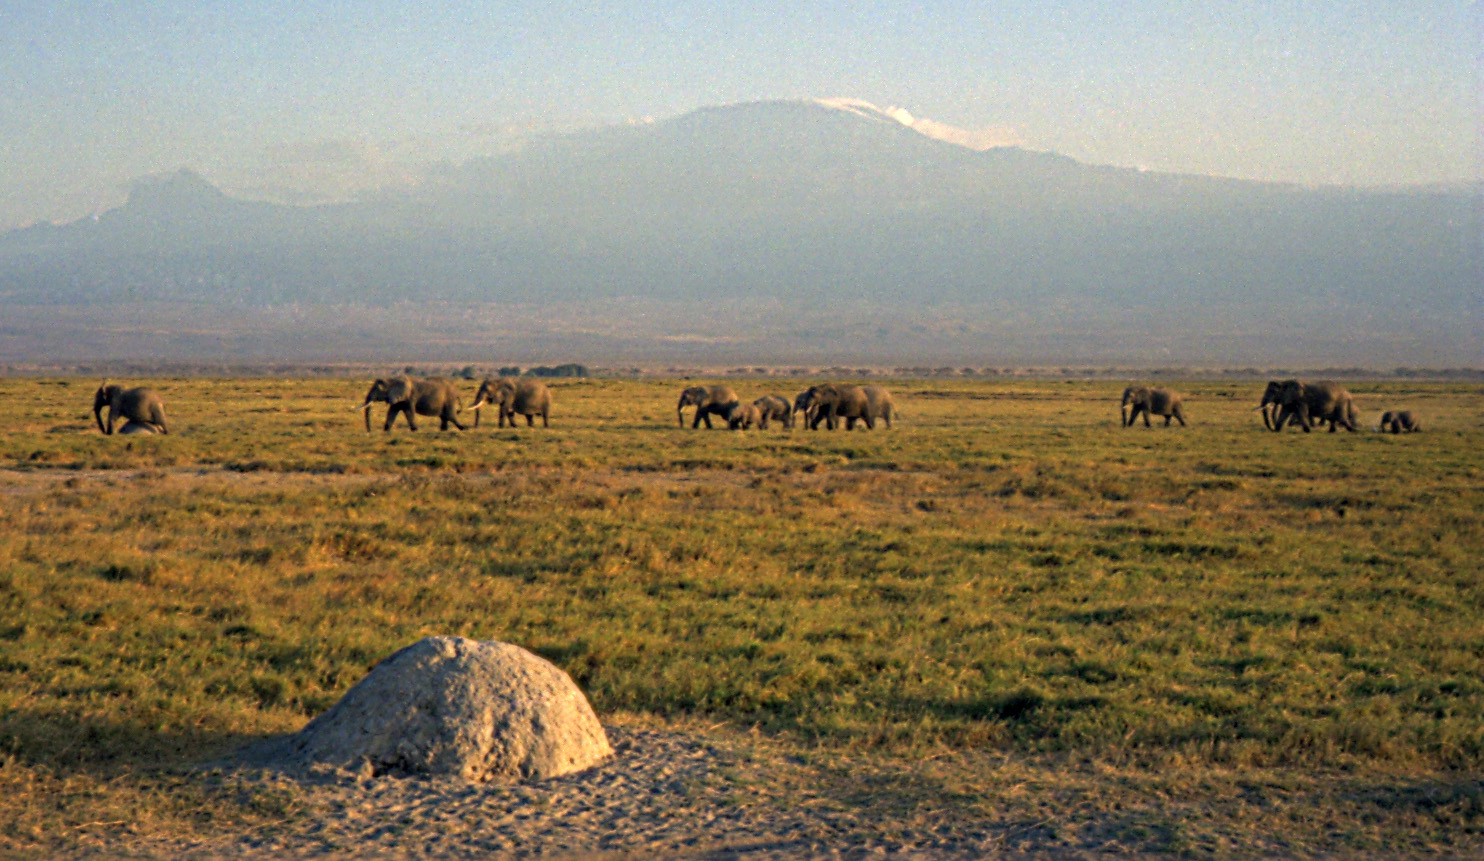 Elephants and Mount Kilimanjaro.  Image:  Dan Lundberg